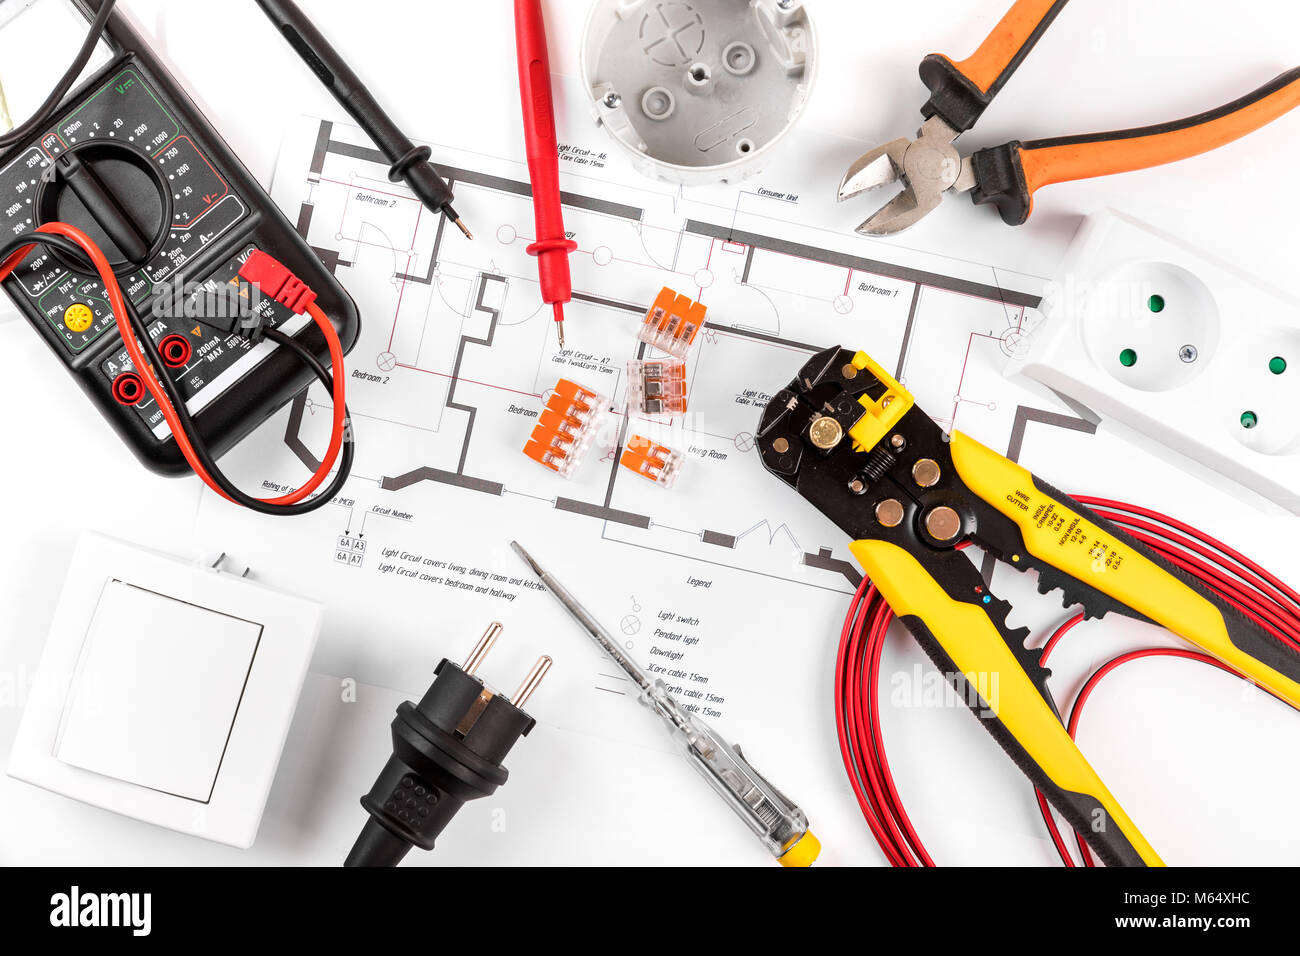 Electrical Cable Diagram Stock Photos Wire Room Tools And Equipment On Circuit Top View Image